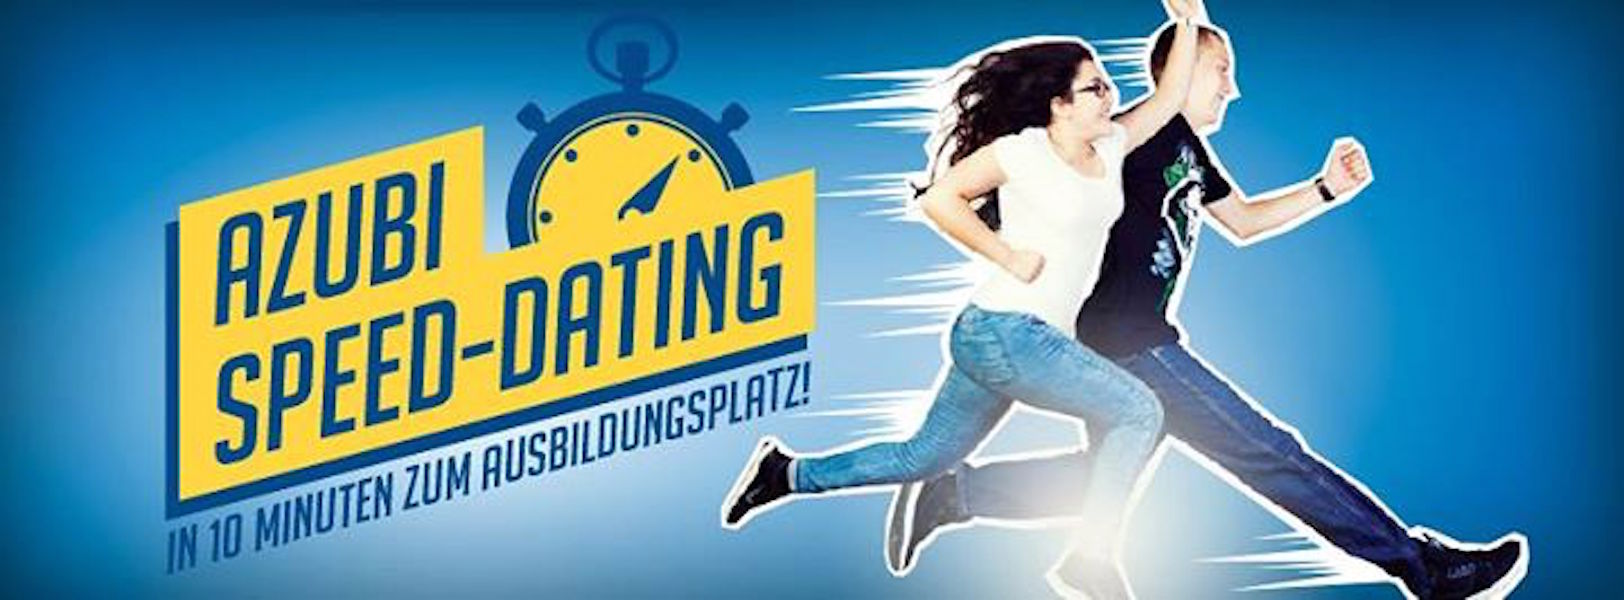 Dortmund dating